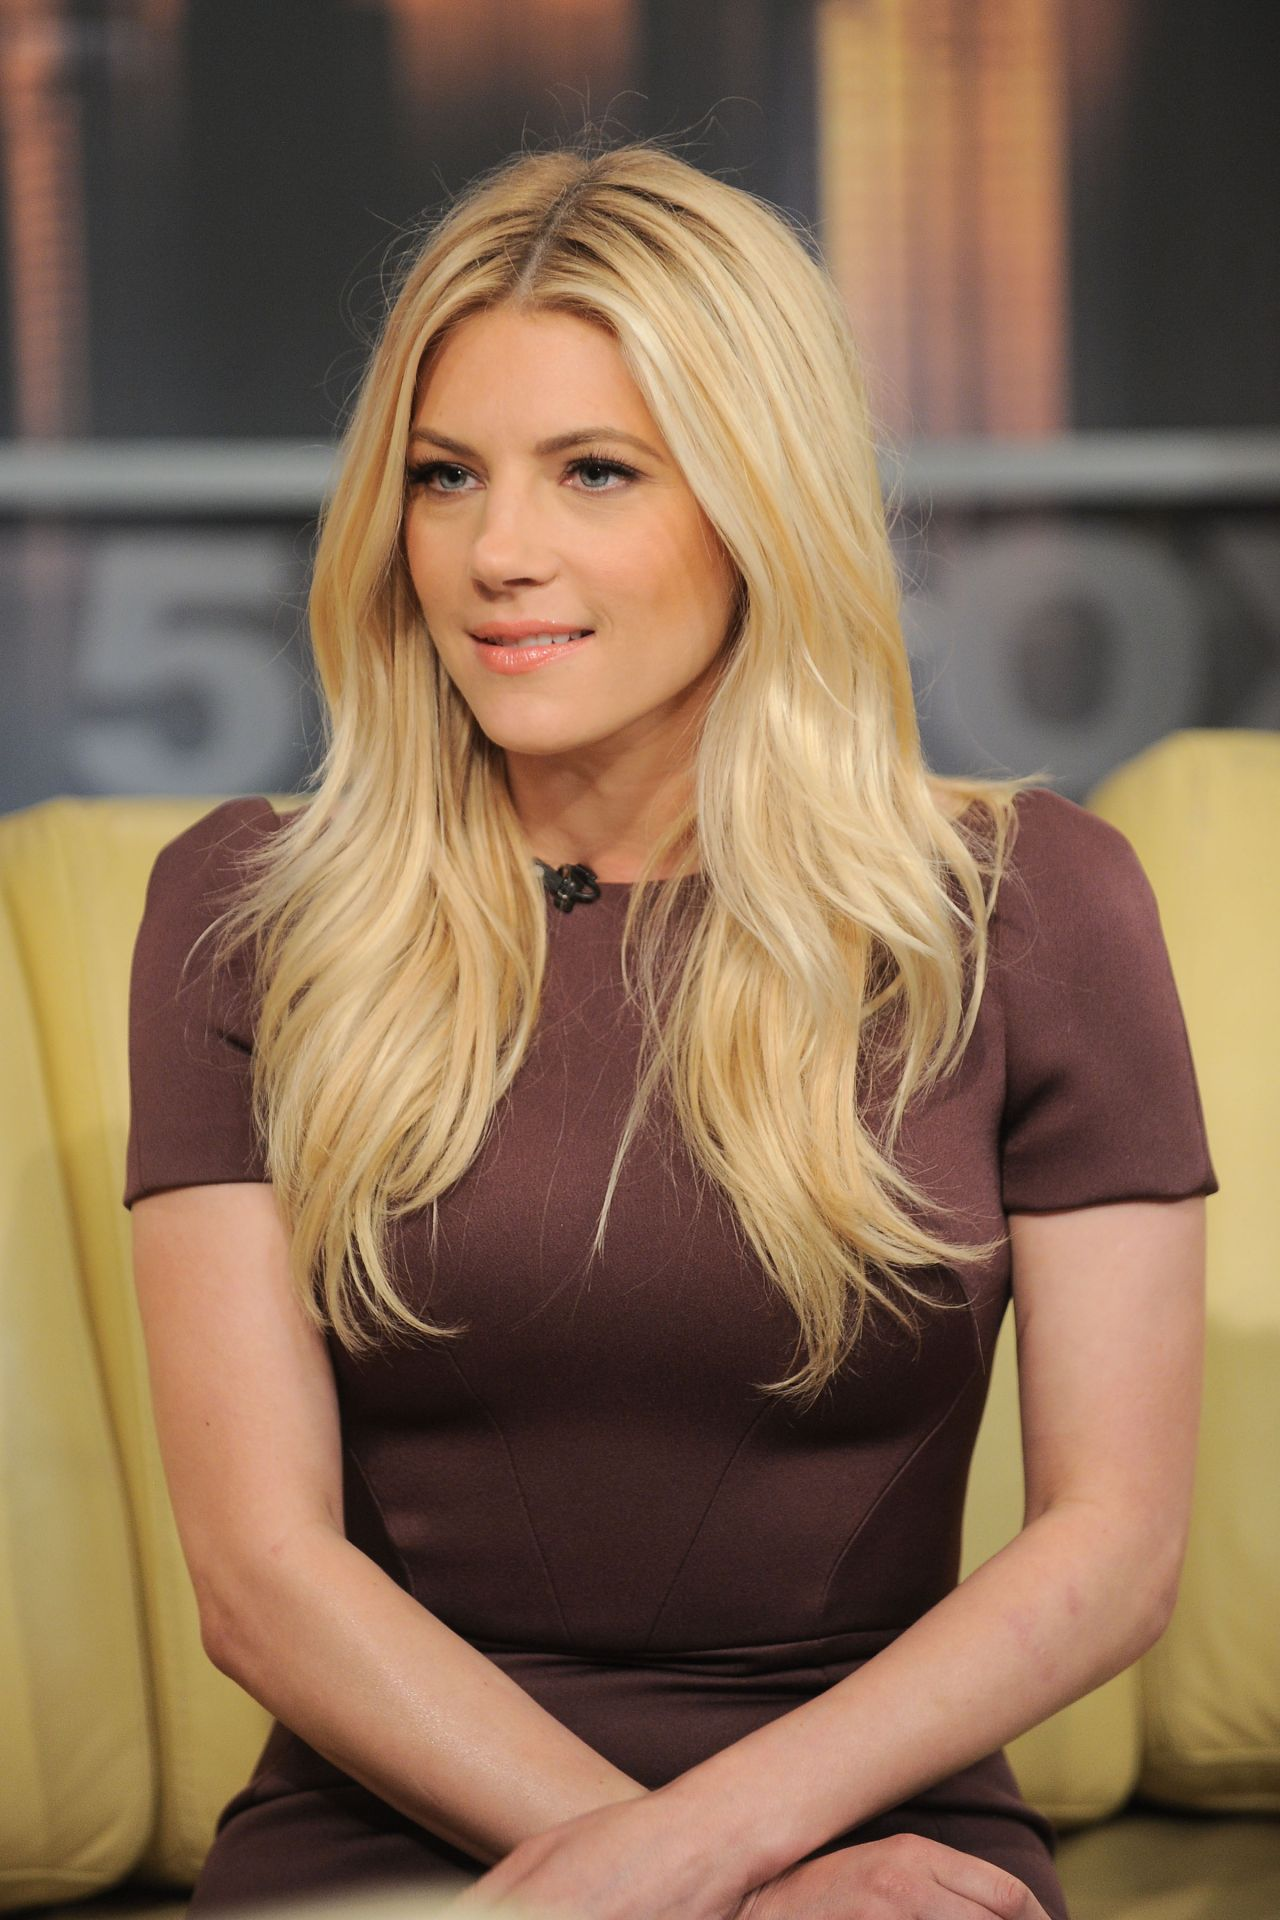 Katheryn Winnick On Good Day New York In Nyc 08012017-6635